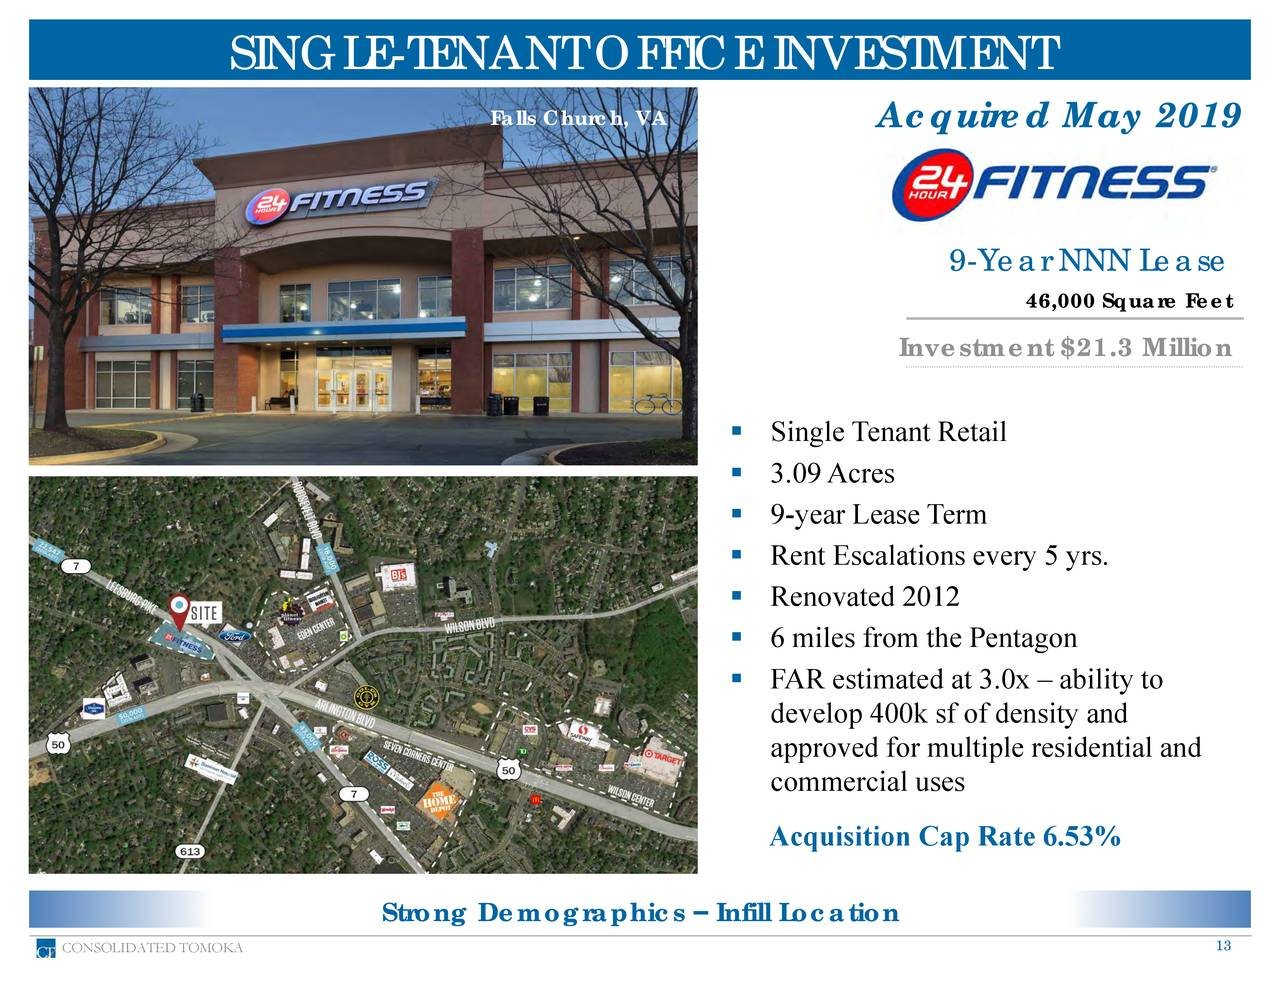 Falls Church, VA Acquired May 2019 9-Year NNN Lease 46,000 Square Feet Investment $21.3 Million ▪ Single Tenant Retail ▪ 3.09Acres ▪ 9-year Lease Term ▪ Rent Escalations every 5 yrs. ▪ Renovated 2012 ▪ 6 miles from the Pentagon ▪ FAR estimated at 3.0x – ability to develop 400k sf of density and approved for multiple residential and commercial uses Acquisition Cap Rate 6.53% Strong Demographics – Infill Location CONSOLIDATED TOMOKA 13